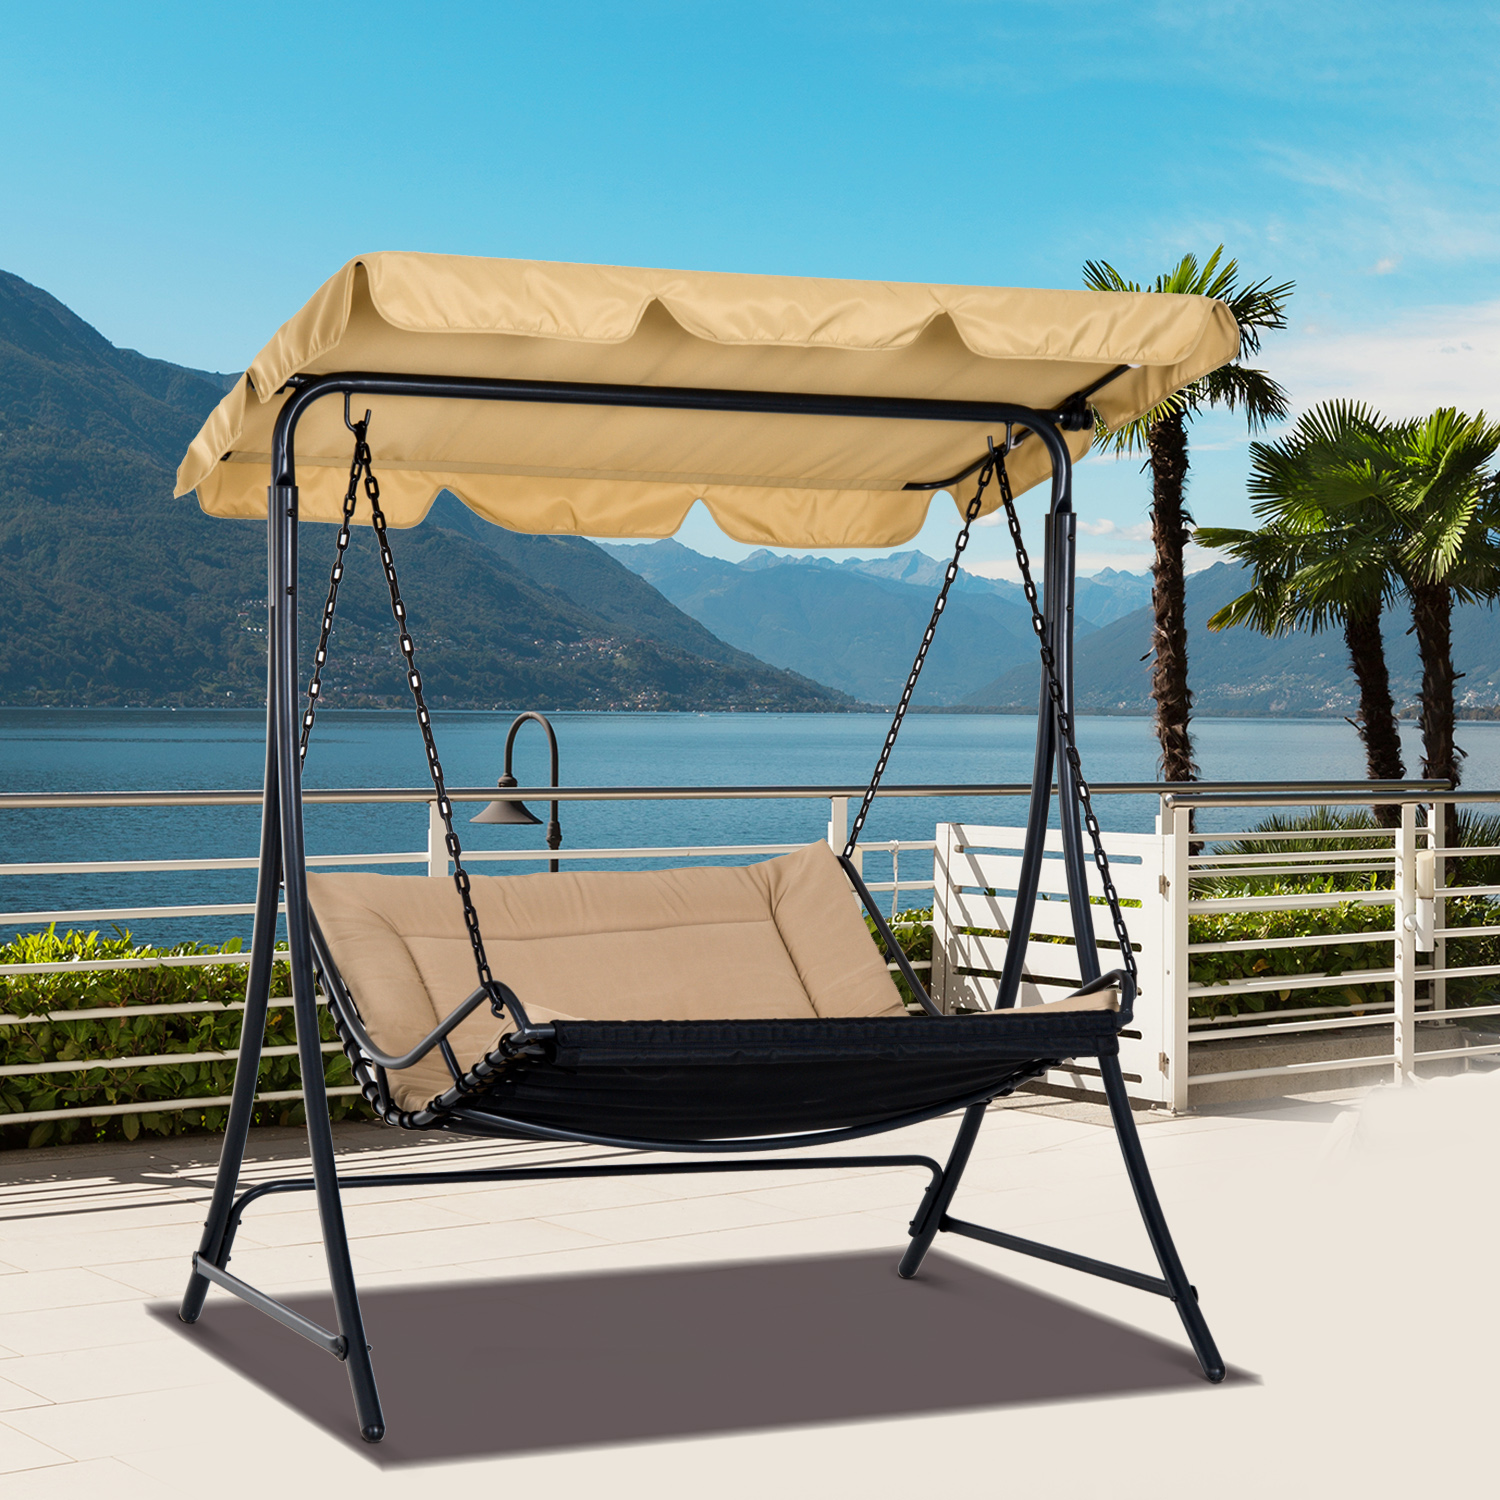 Image of CAD $142.99 Outsunny 2 Person Garden Swing Chair Lounge Cushioned Seat Porch with Tilt Canopy / Hammock Hanging Chaise Seater Outdoor Backyard Canada 95509791979